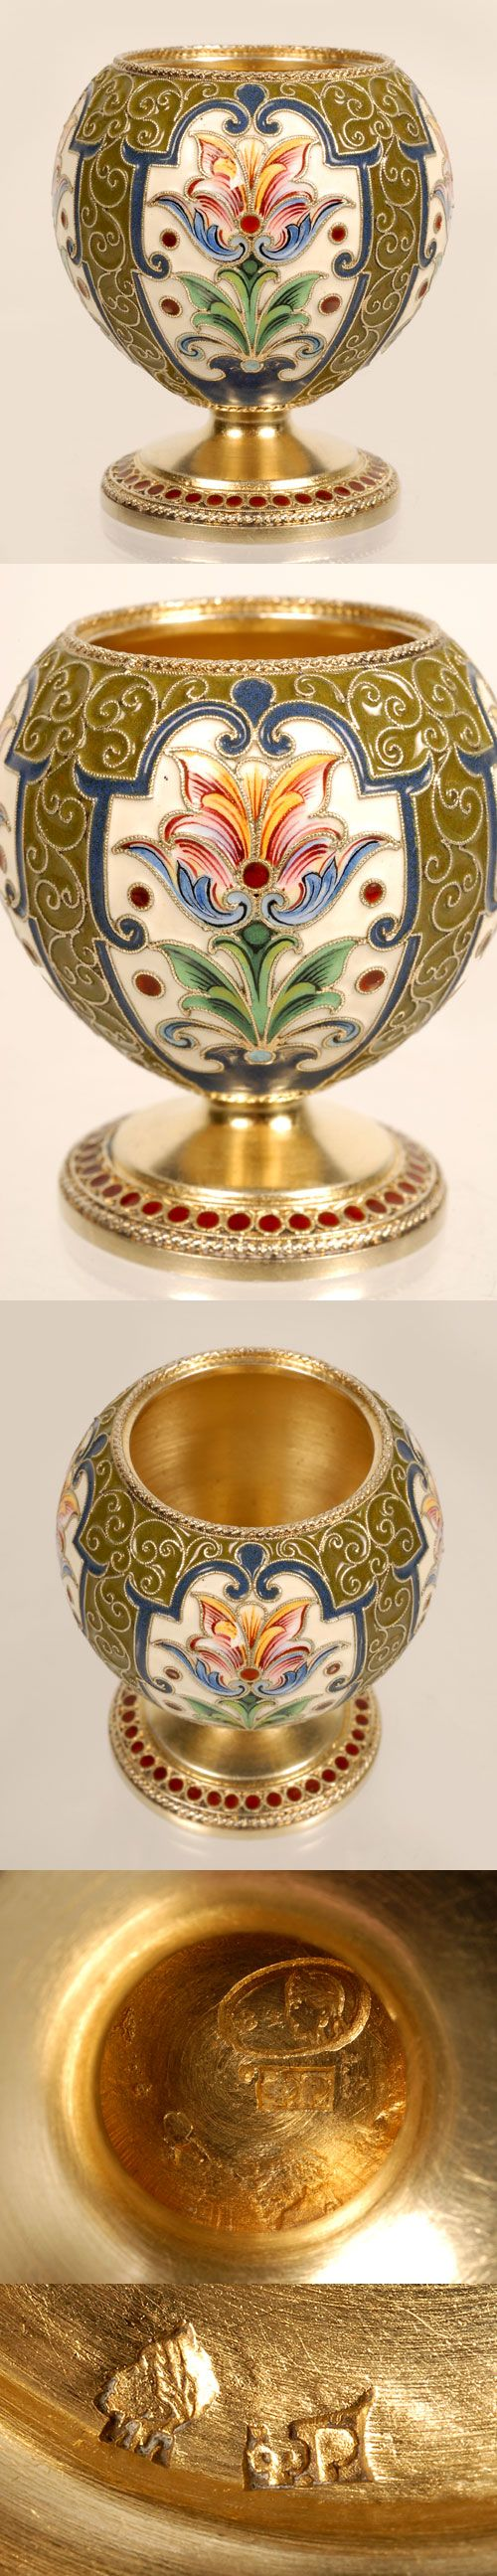 A Russian silver gilt and cloisonne enamel vodka cup, Feodor Ruckert, Moscowq, circa 1896-1908. The bulbous body decorated with multi-color stylized foliate cartouches on a cream ground surrounded by olive green enamel set with scrolling filigree wires.